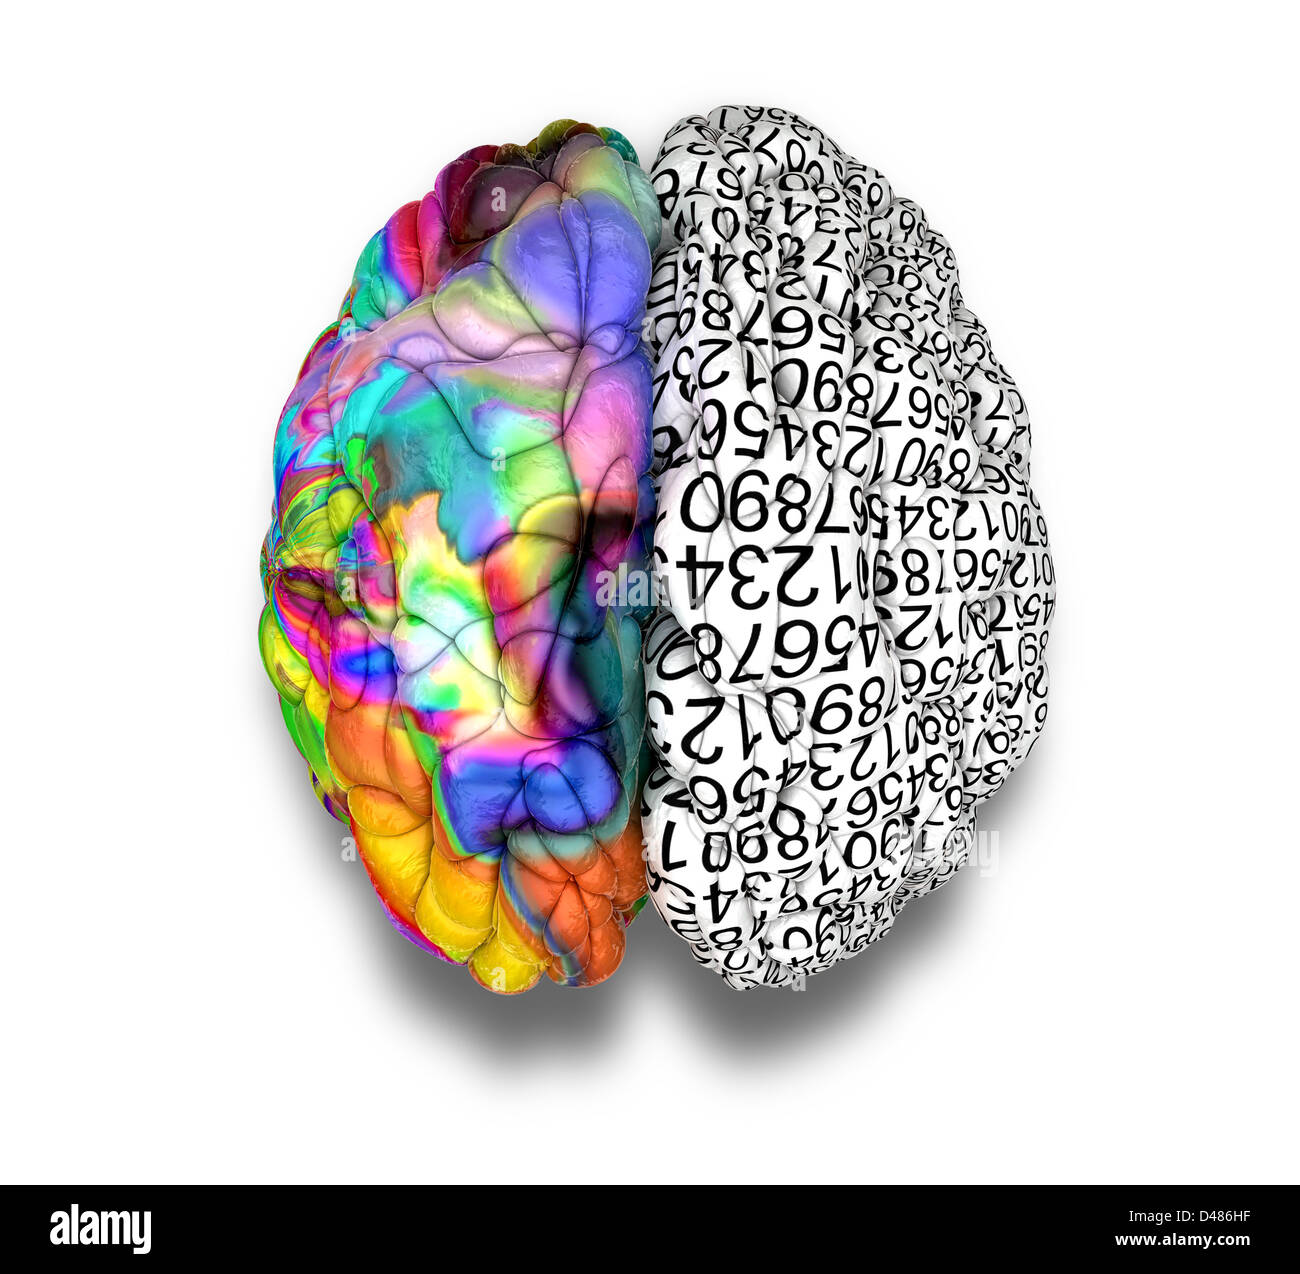 a typical brain the left side depicting an analytical stock a typical brain the left side depicting an analytical structured and logical mind